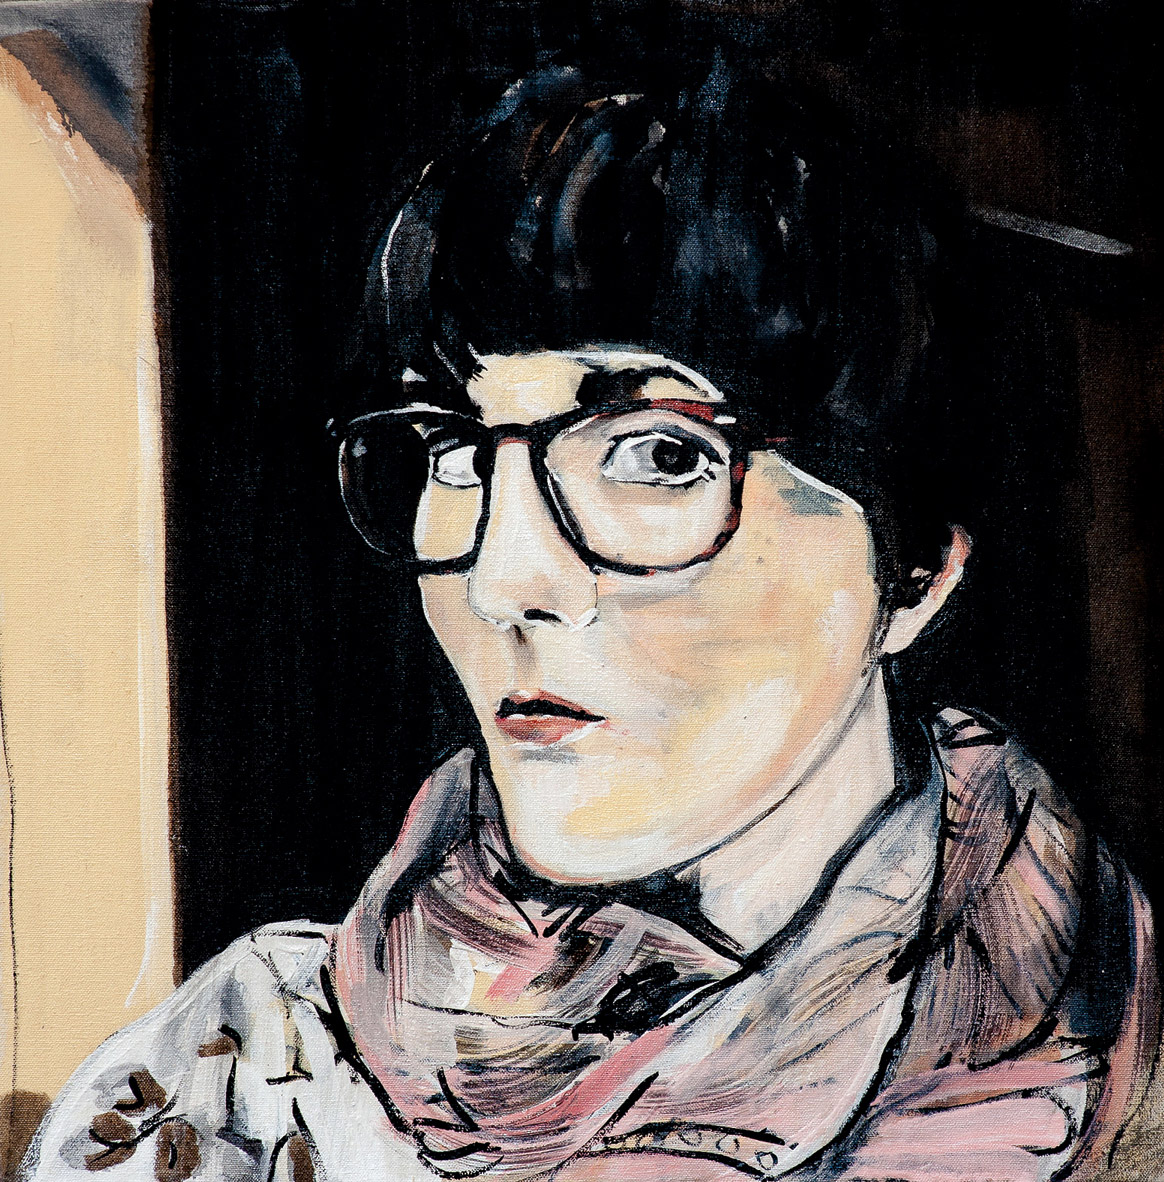 Painting of Kate Hargreaves by Melanie Janisse-Barlow